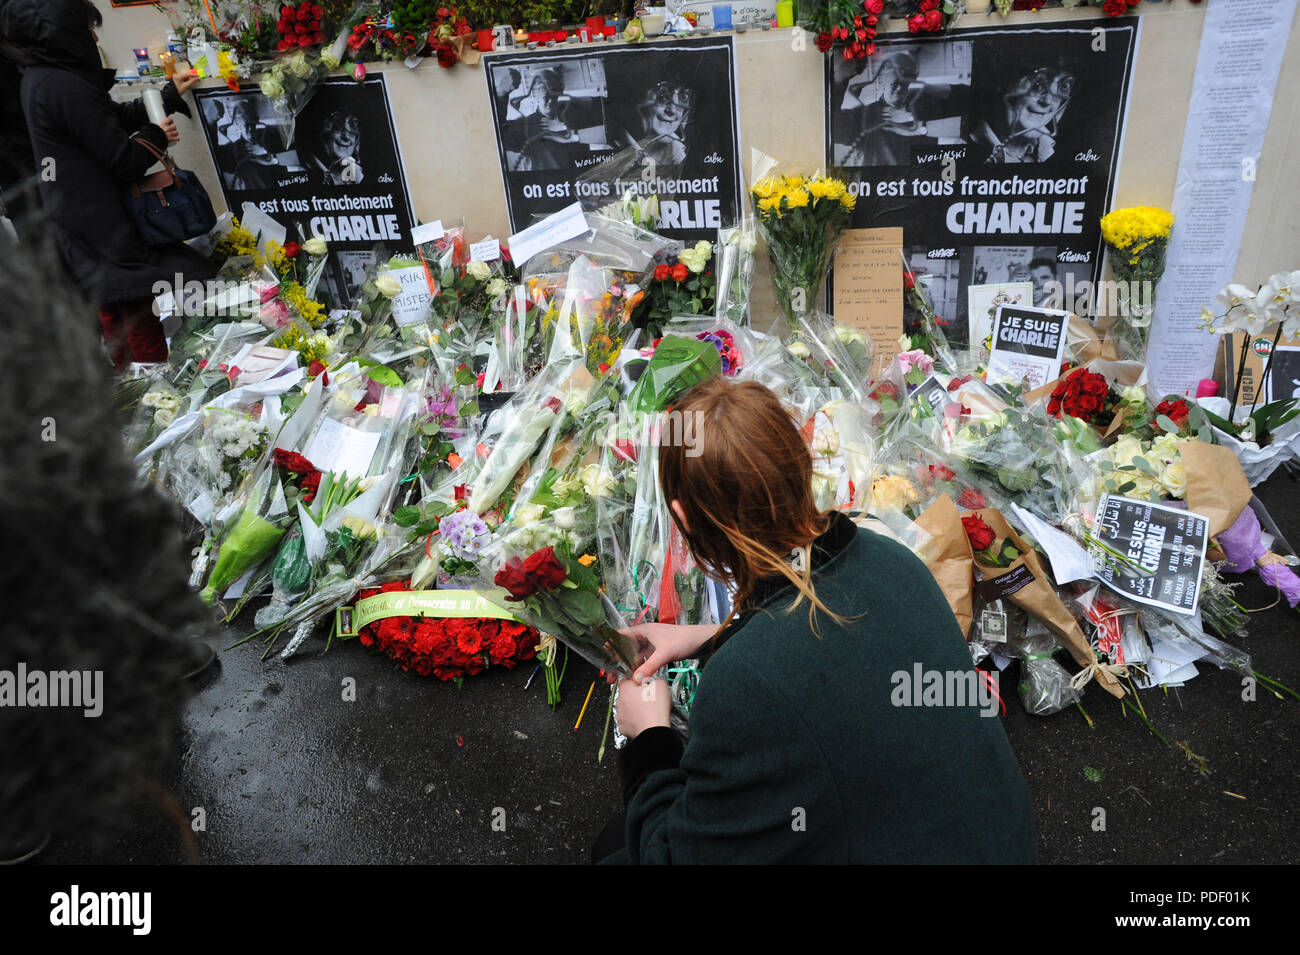 January 8, 2015 - Paris, France: People pay tribute to Charlie Hebdo staff near the satirical magazine headquarter. Des gens se recueillent pres d'un memorial improvise au lendemain de l'attaque meurtriere contre Charlie Hebdo. *** FRANCE OUT / NO SALES TO FRENCH MEDIA *** Stock Photo